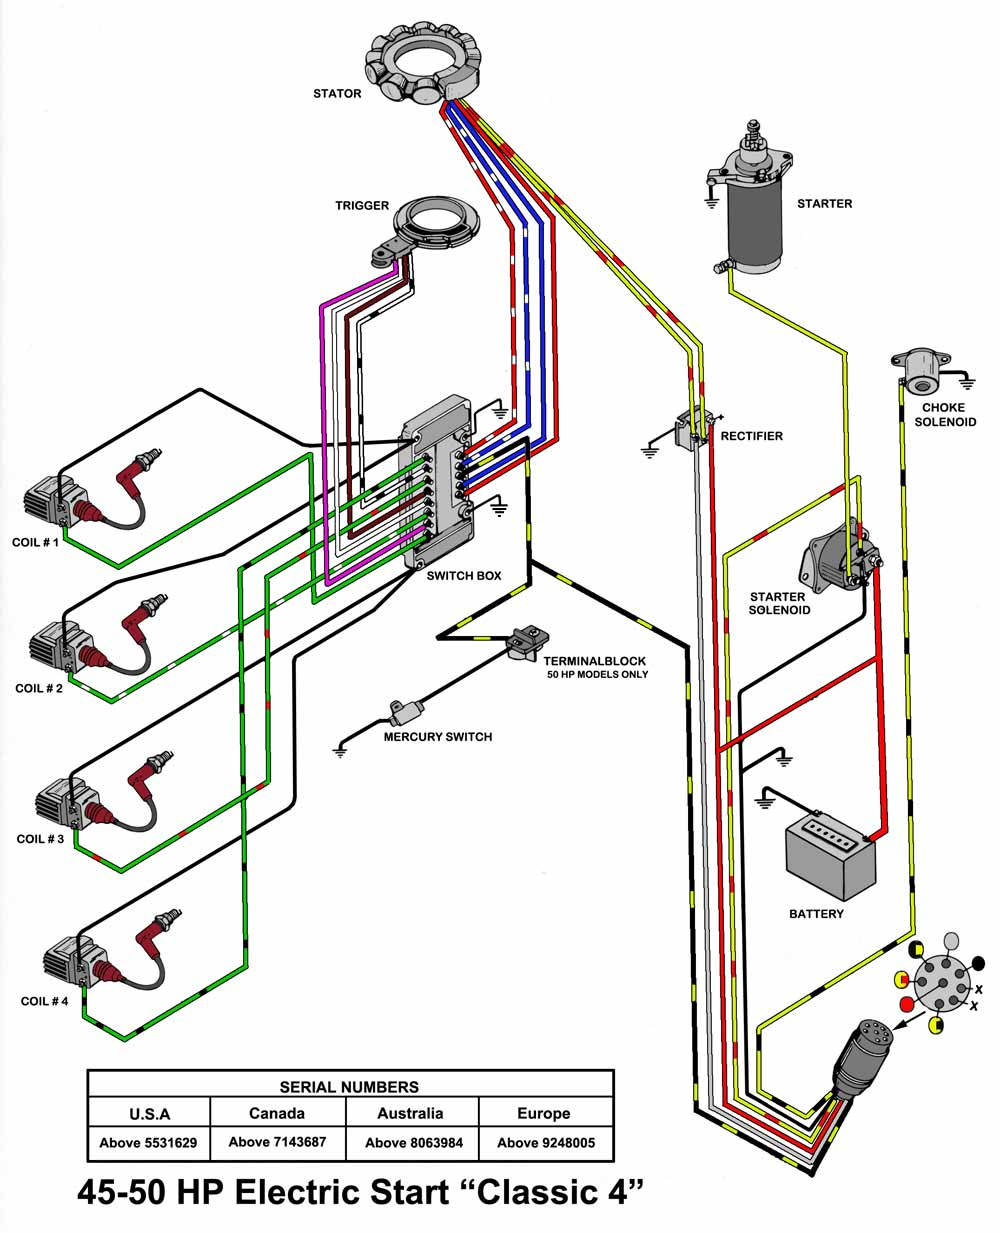 77 Mercury Outboard Wiring Diagram - Wiring Diagram Online on chris craft wiring diagram, yamaha golf cart wiring diagram, yamaha road star wiring-diagram, yamaha wiring harness diagram, yamaha outboard diagnostic connector, smoker craft wiring diagram, yamaha outboard exhaust system, johnson outboard wiring diagram, sea hunt wiring diagram, tohatsu outboard wiring diagram, bennington wiring diagram, snowmobile wiring diagram, yamaha 703 remote control wiring diagram, yamaha gas wiring diagram, outboard starter wiring diagram, yamaha outboard relay, 1996 f150 fuel diagram, yamaha generator wiring diagram, yamaha tachometer 6y5-8350t-83-00, dexter wiring diagram,